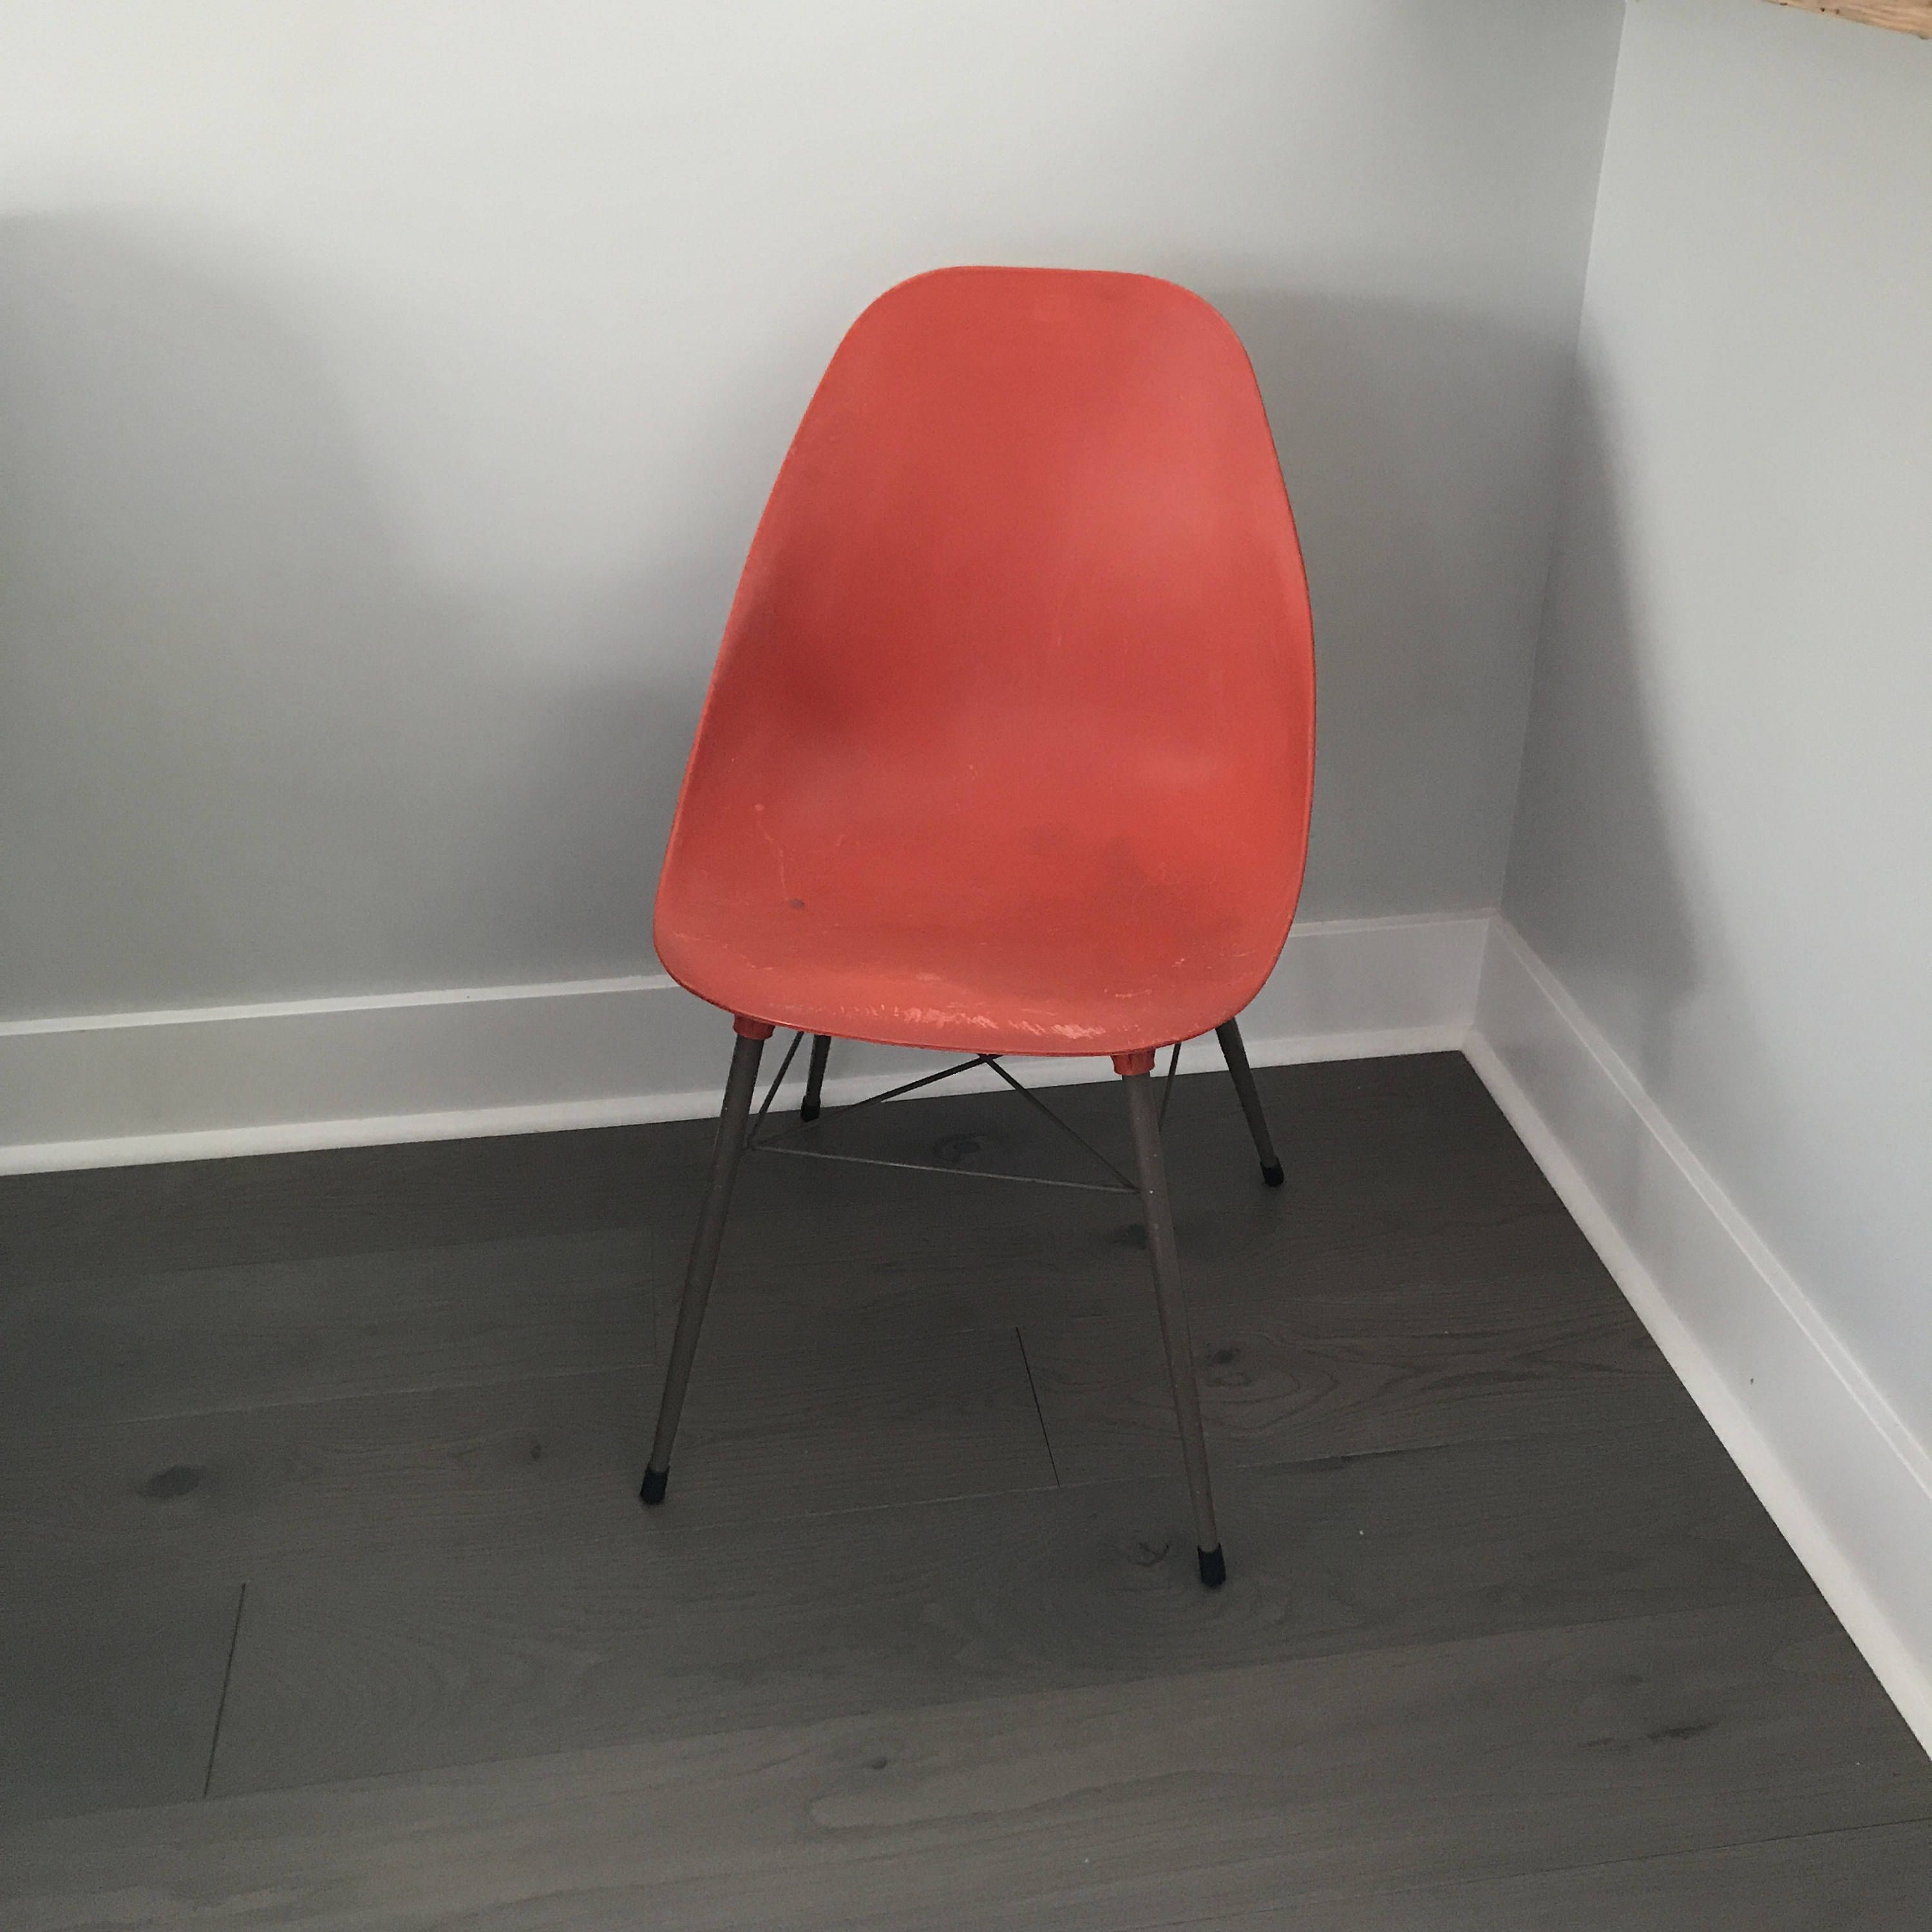 Retro Orange Shell Chair Molded Plastic Chair Mid